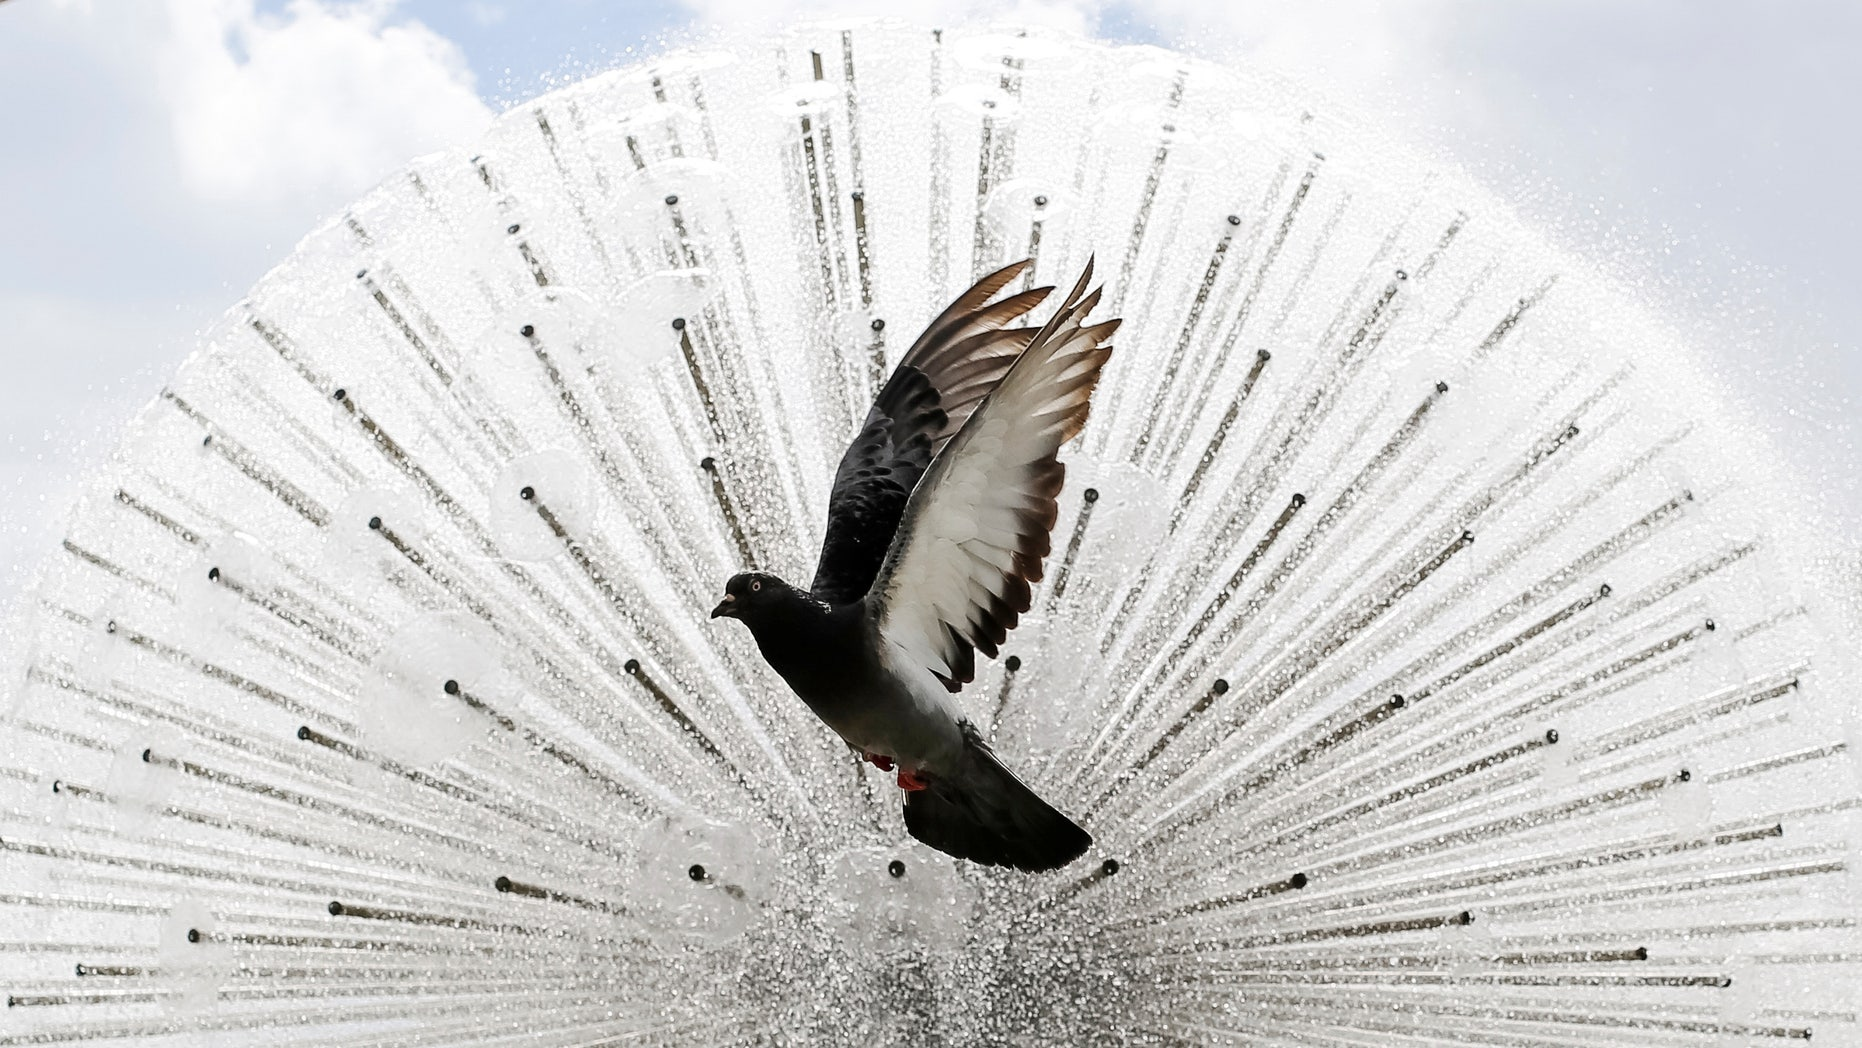 A pigeon flies in front a a fountain during a sunny day in central Kiev, Ukraine, July 8, 2016. (REUTERS/Gleb Garanich)